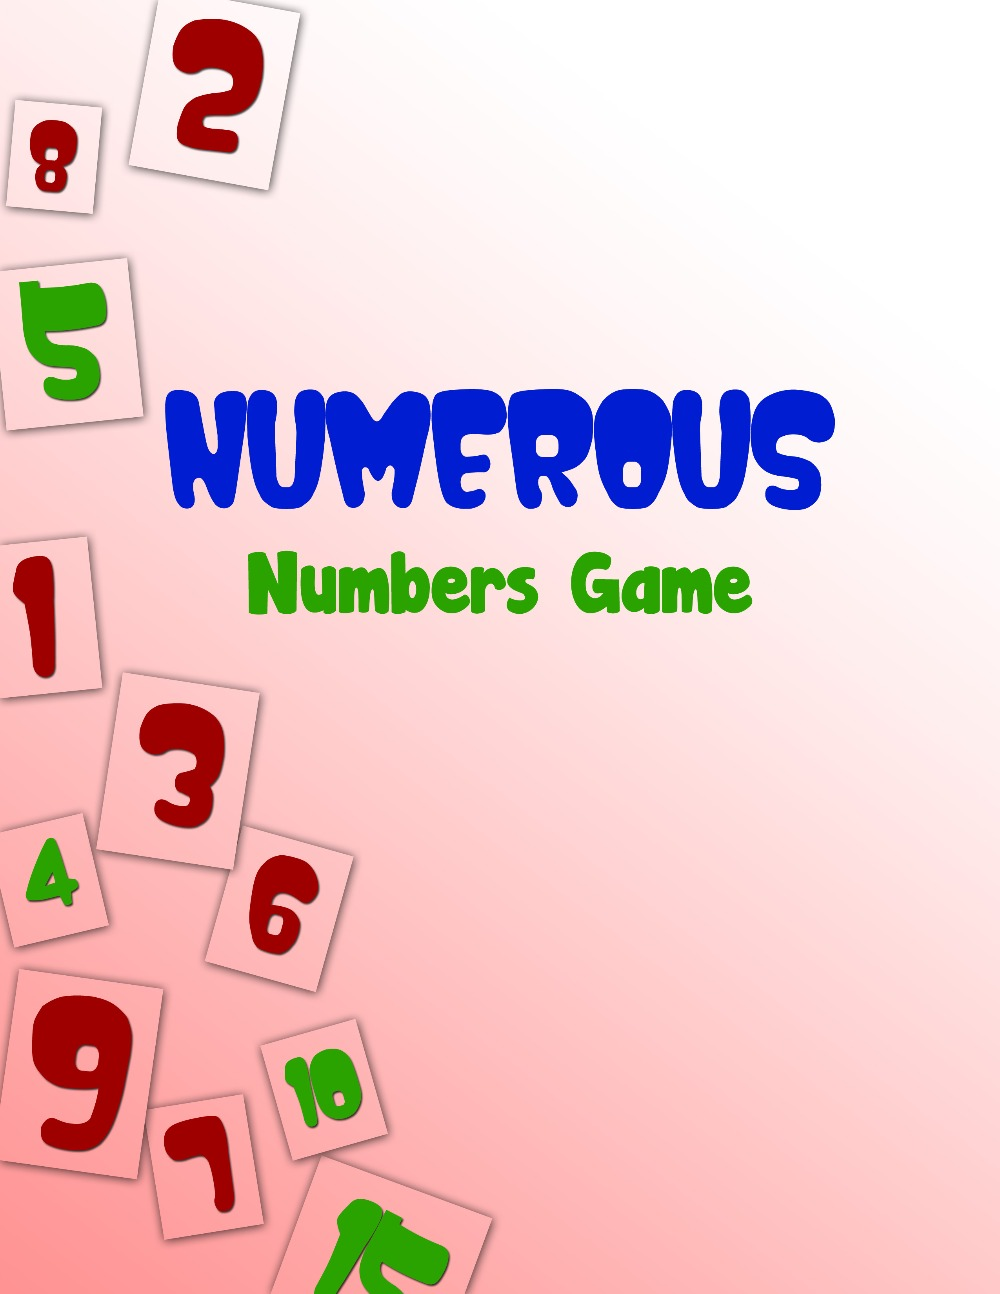 Numerous Numbers Game